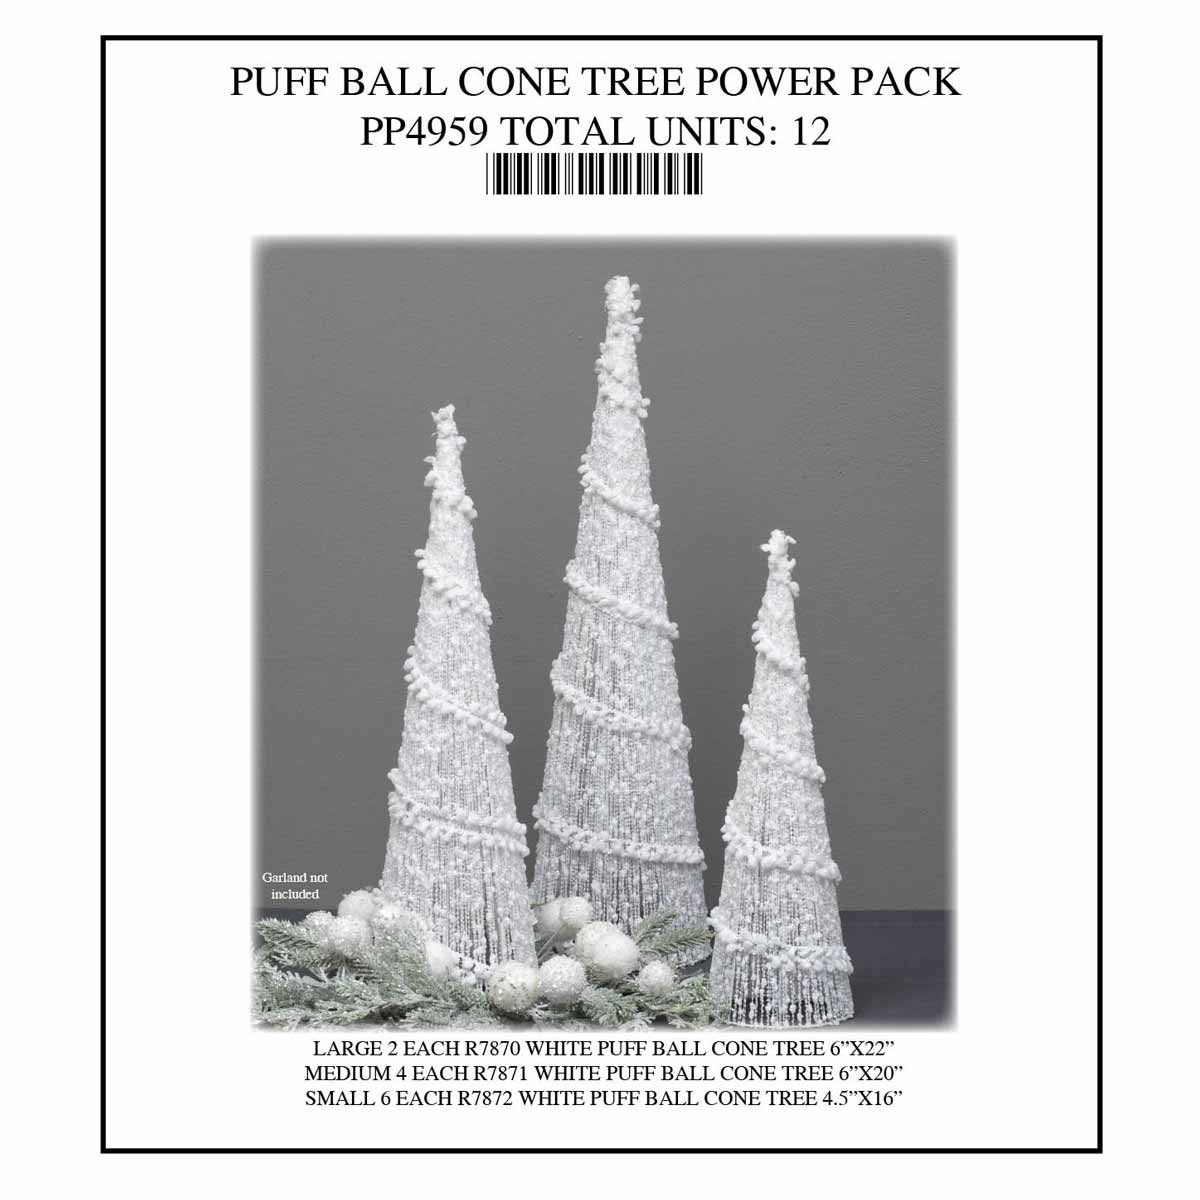 WHITE CONE TREE Power Pack 12 Units